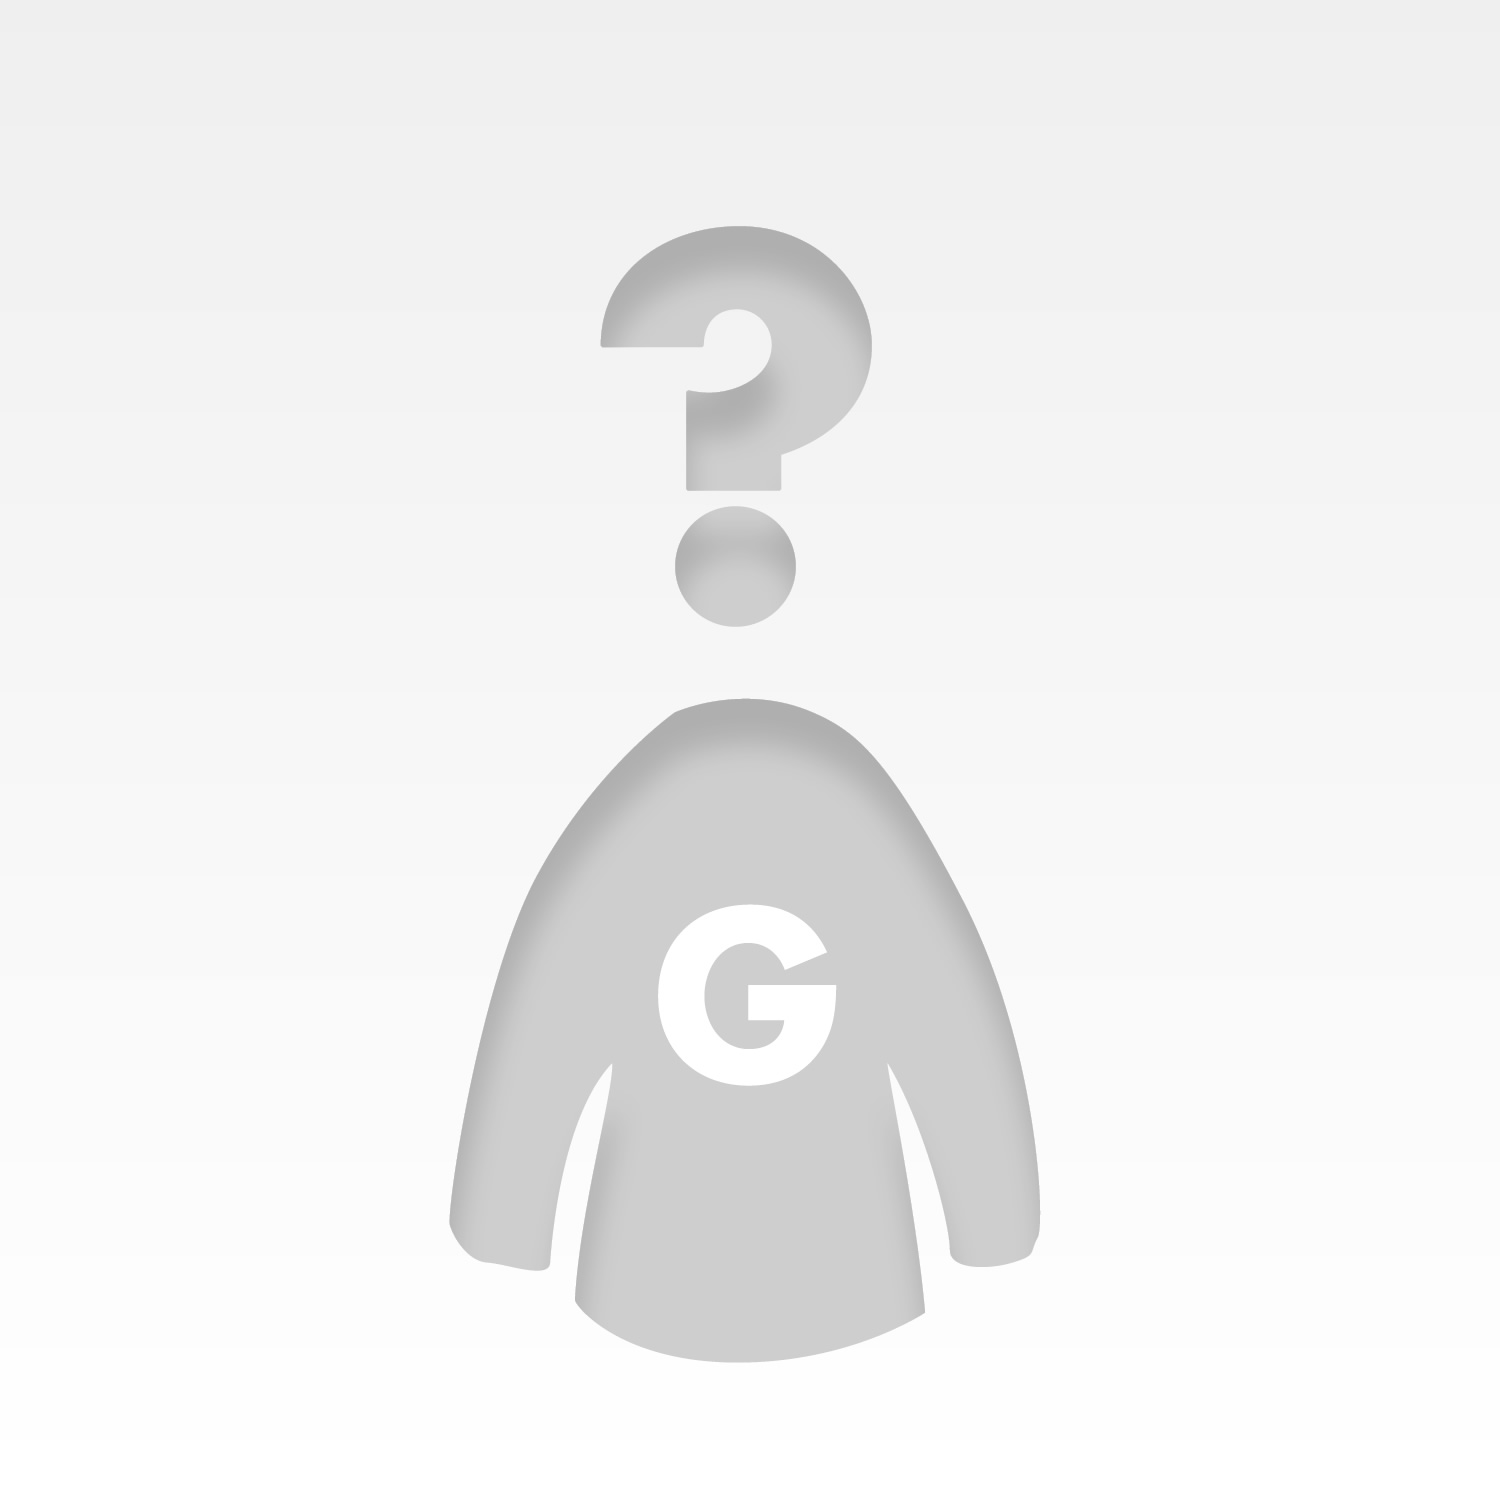 The s2gme4o's avatar